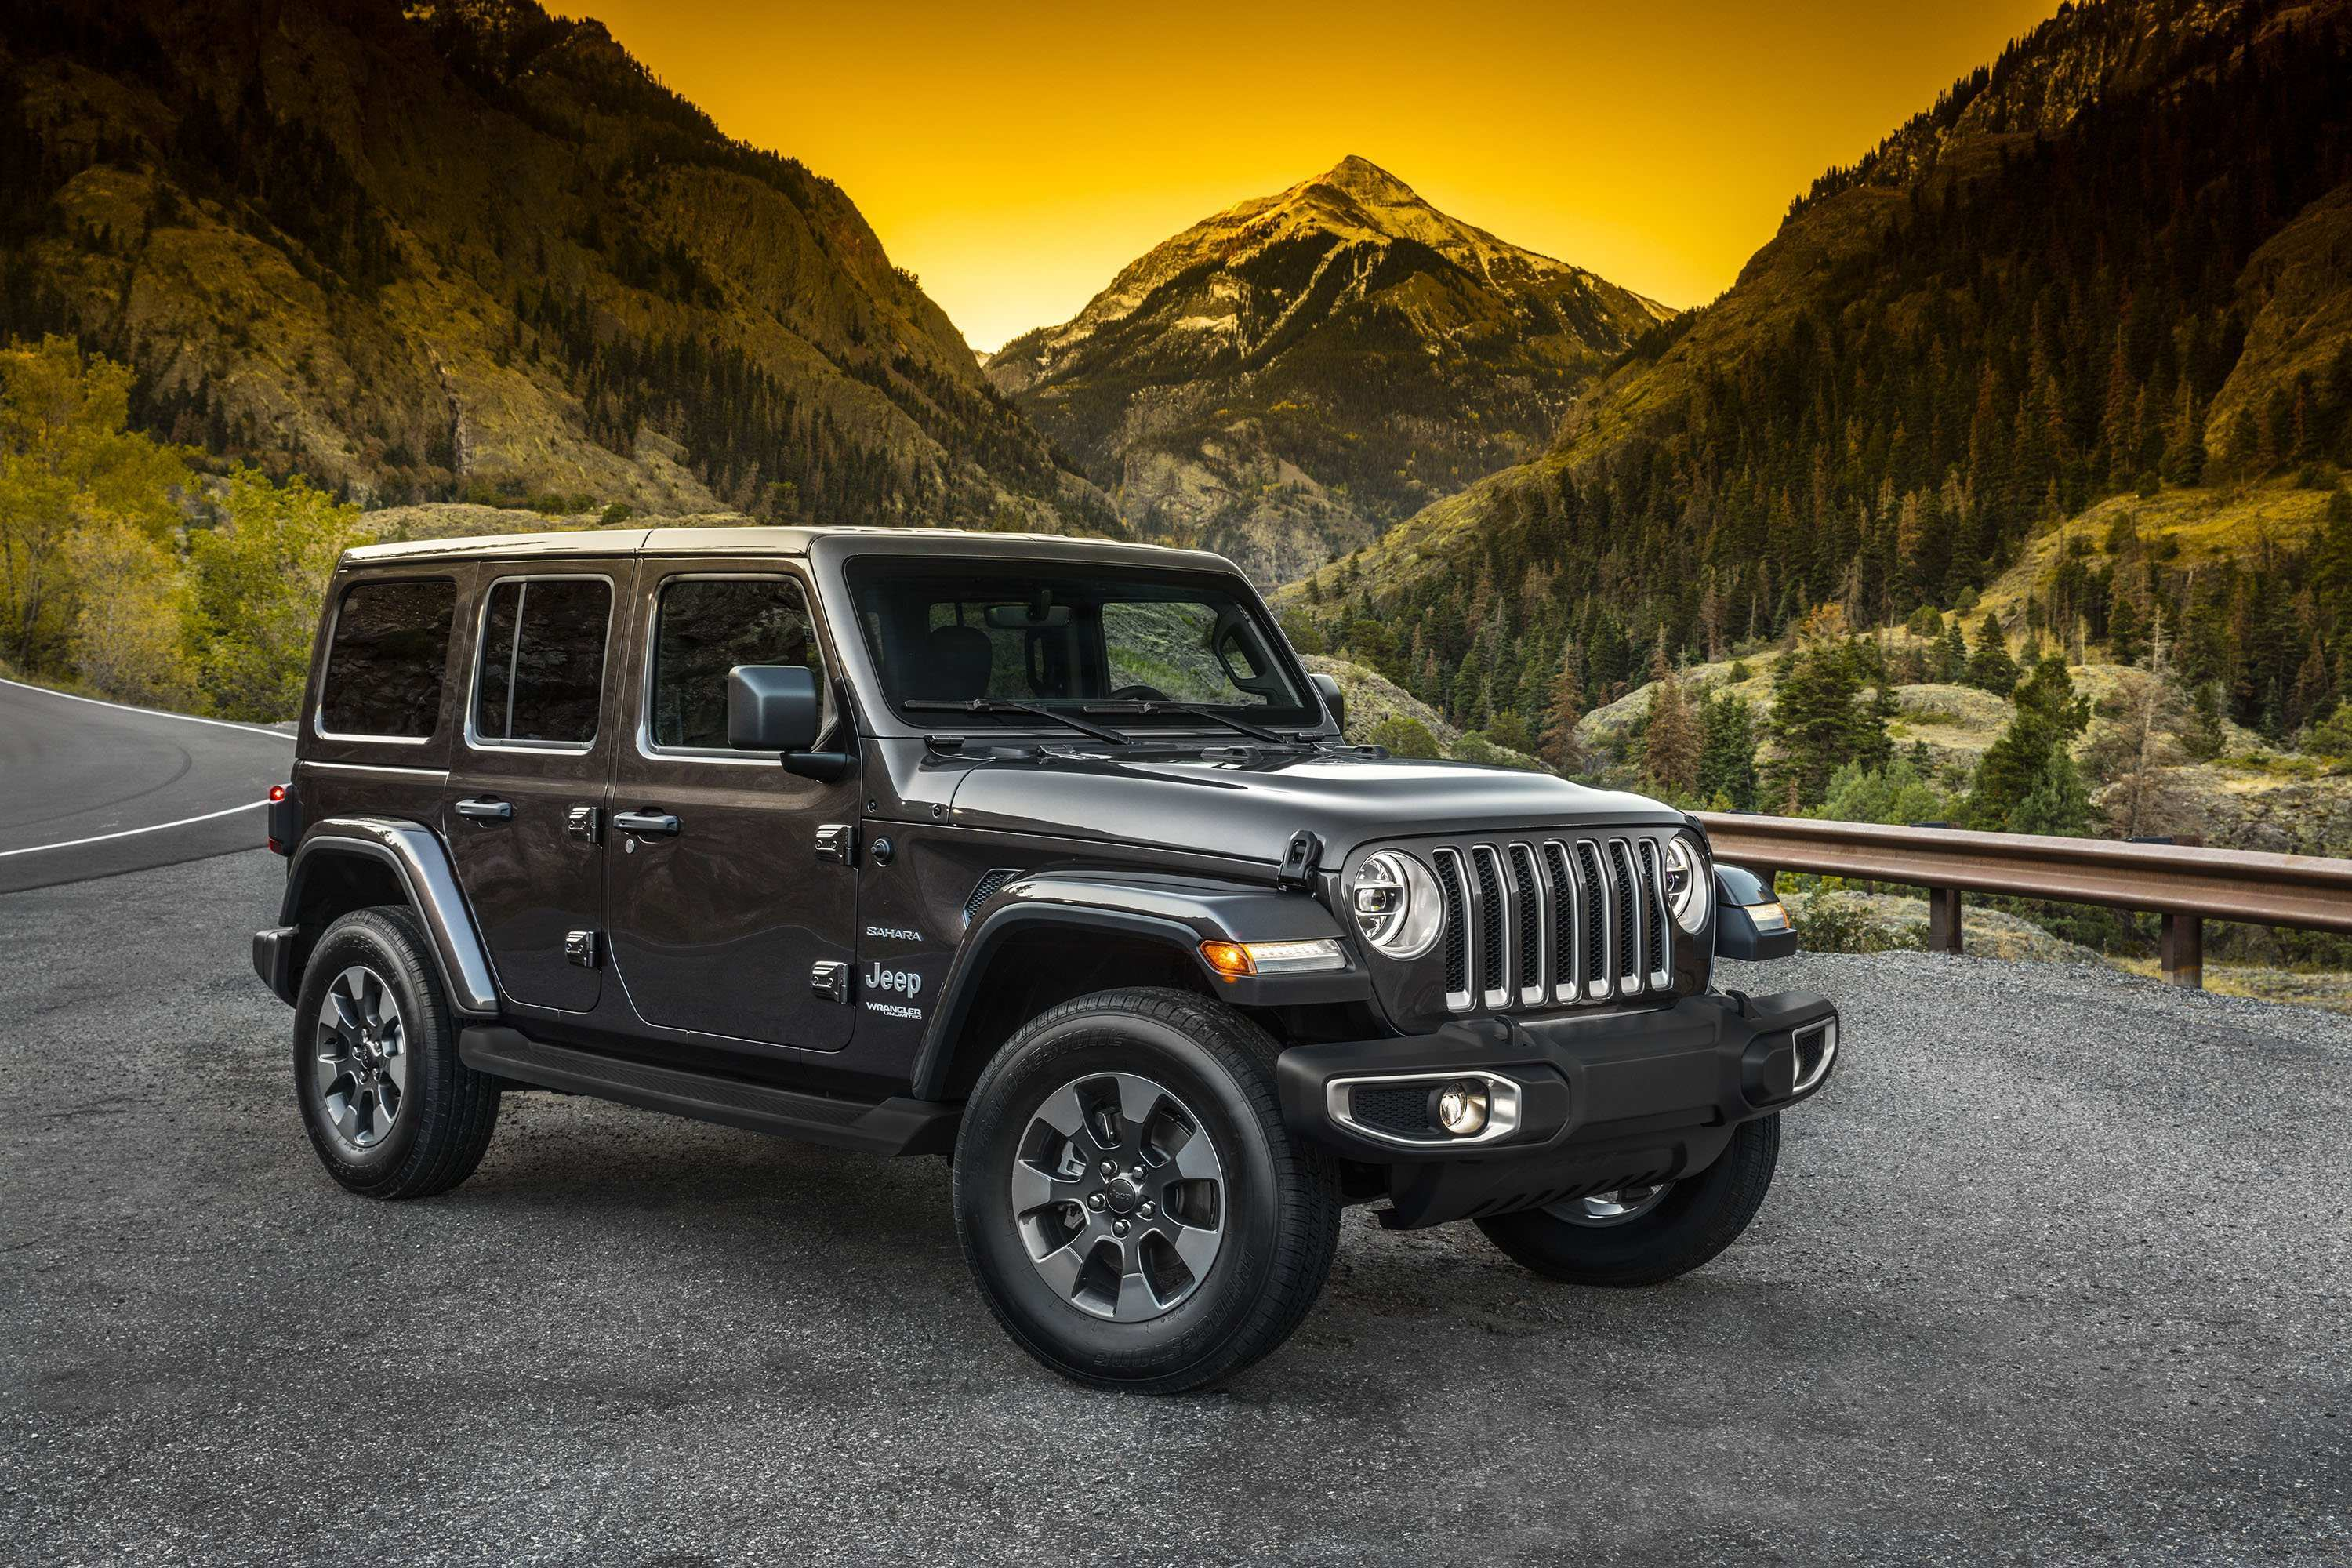 49 All New Jeep Rubicon 2020 Interior